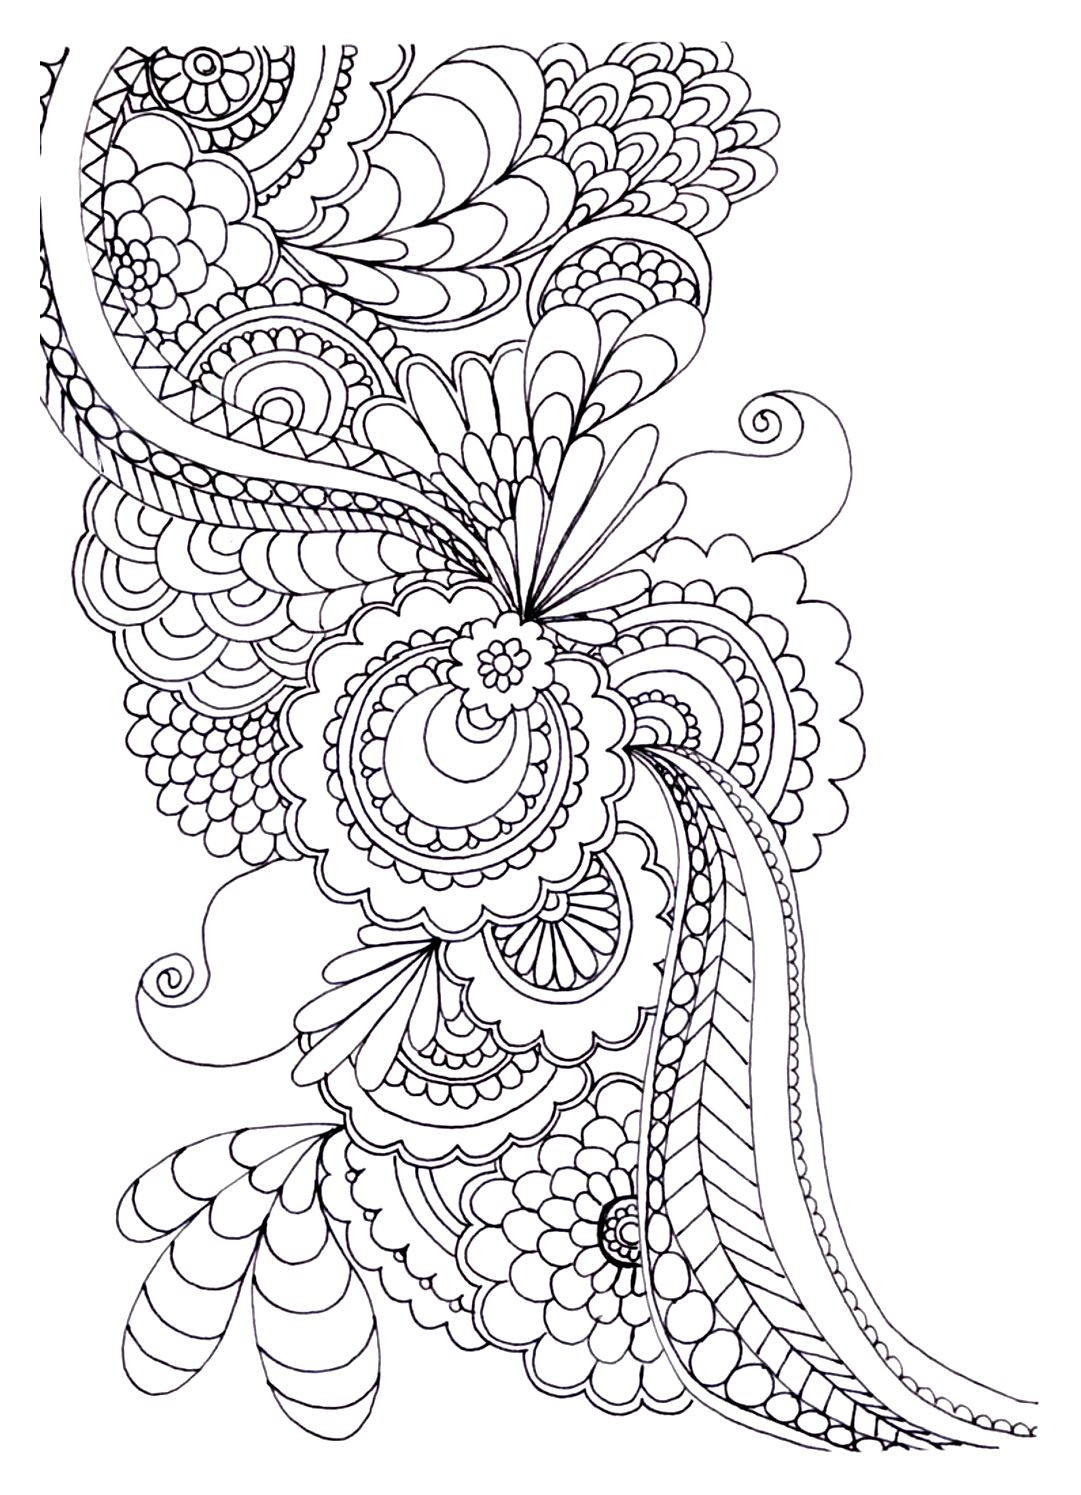 Printable Coloring Pages Adults Free  20 Free Adult Colouring Pages The Organised Housewife